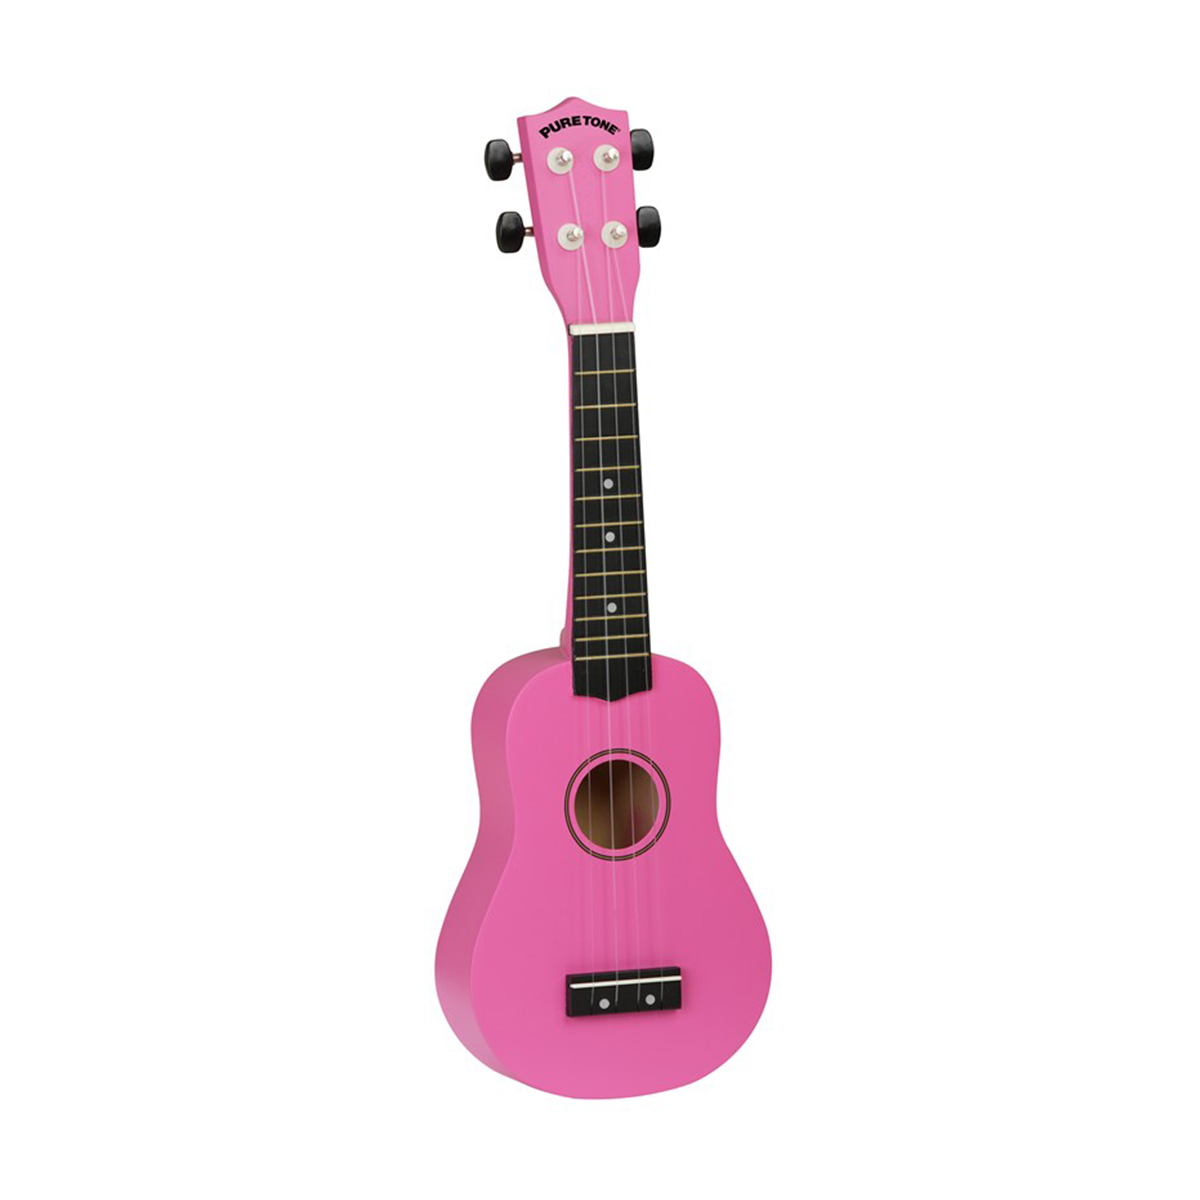 Pure Tone Ukulele Pack Hot Pink